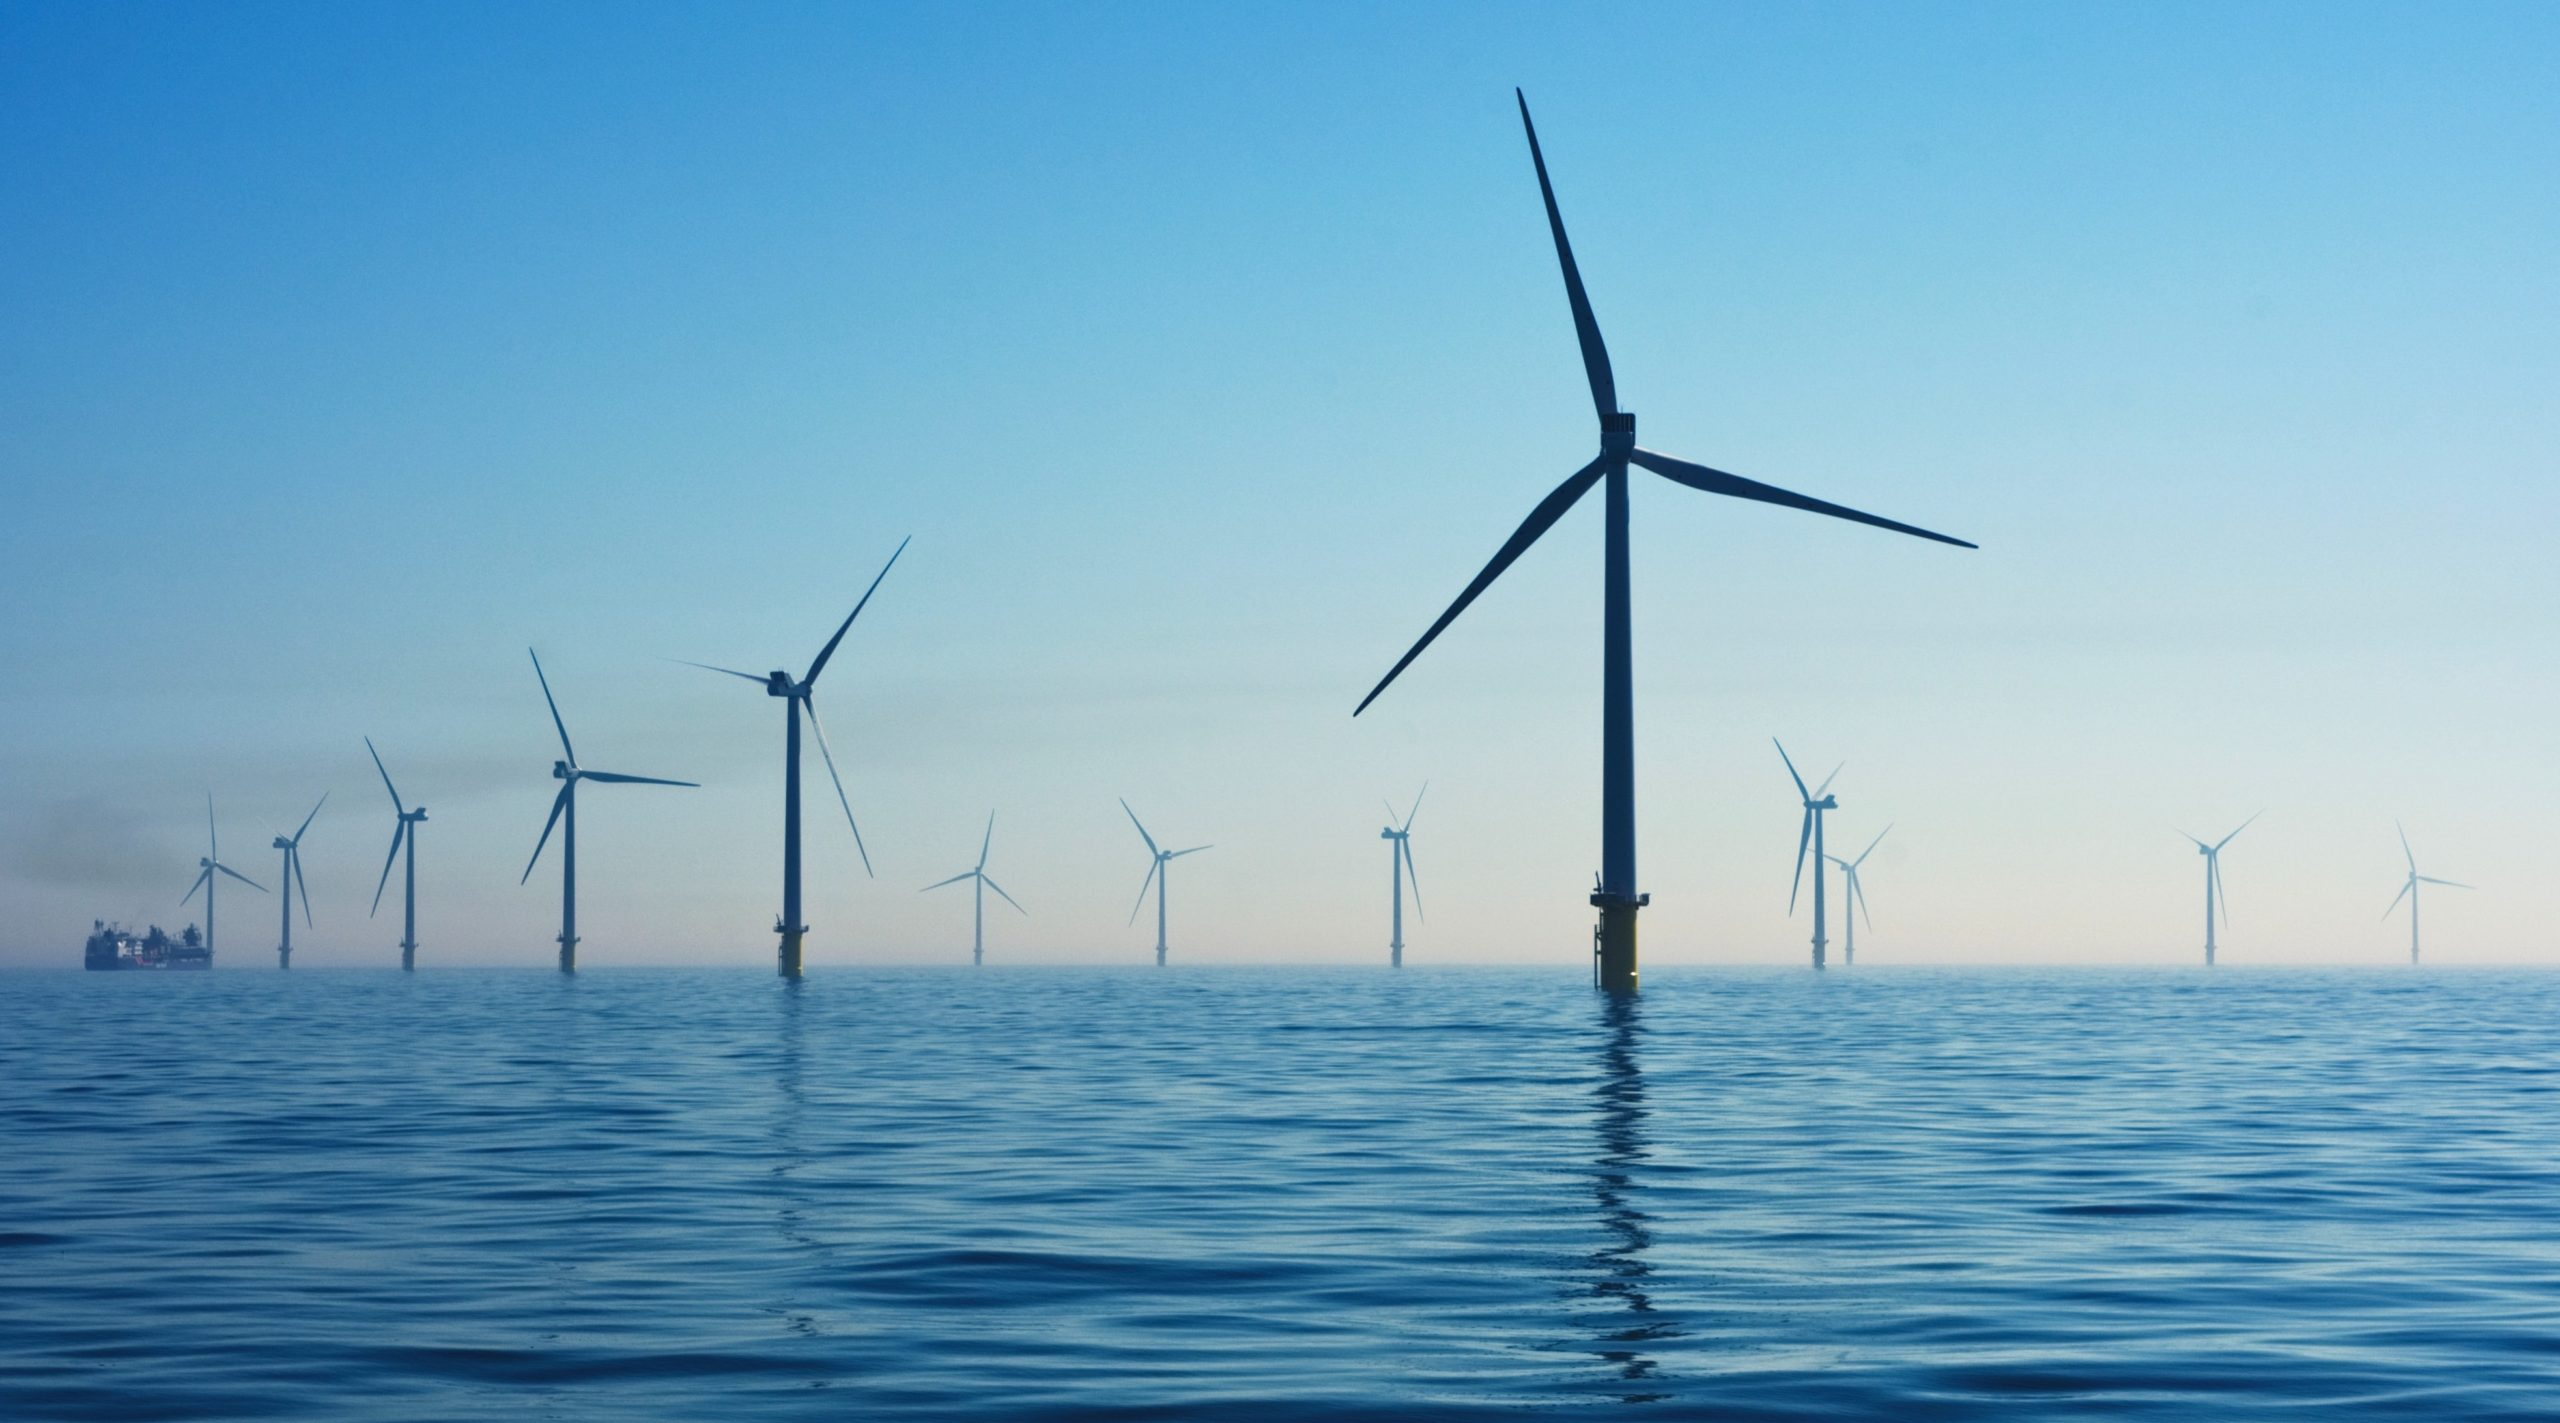 Offshore wind grows by 37 GW globally this year